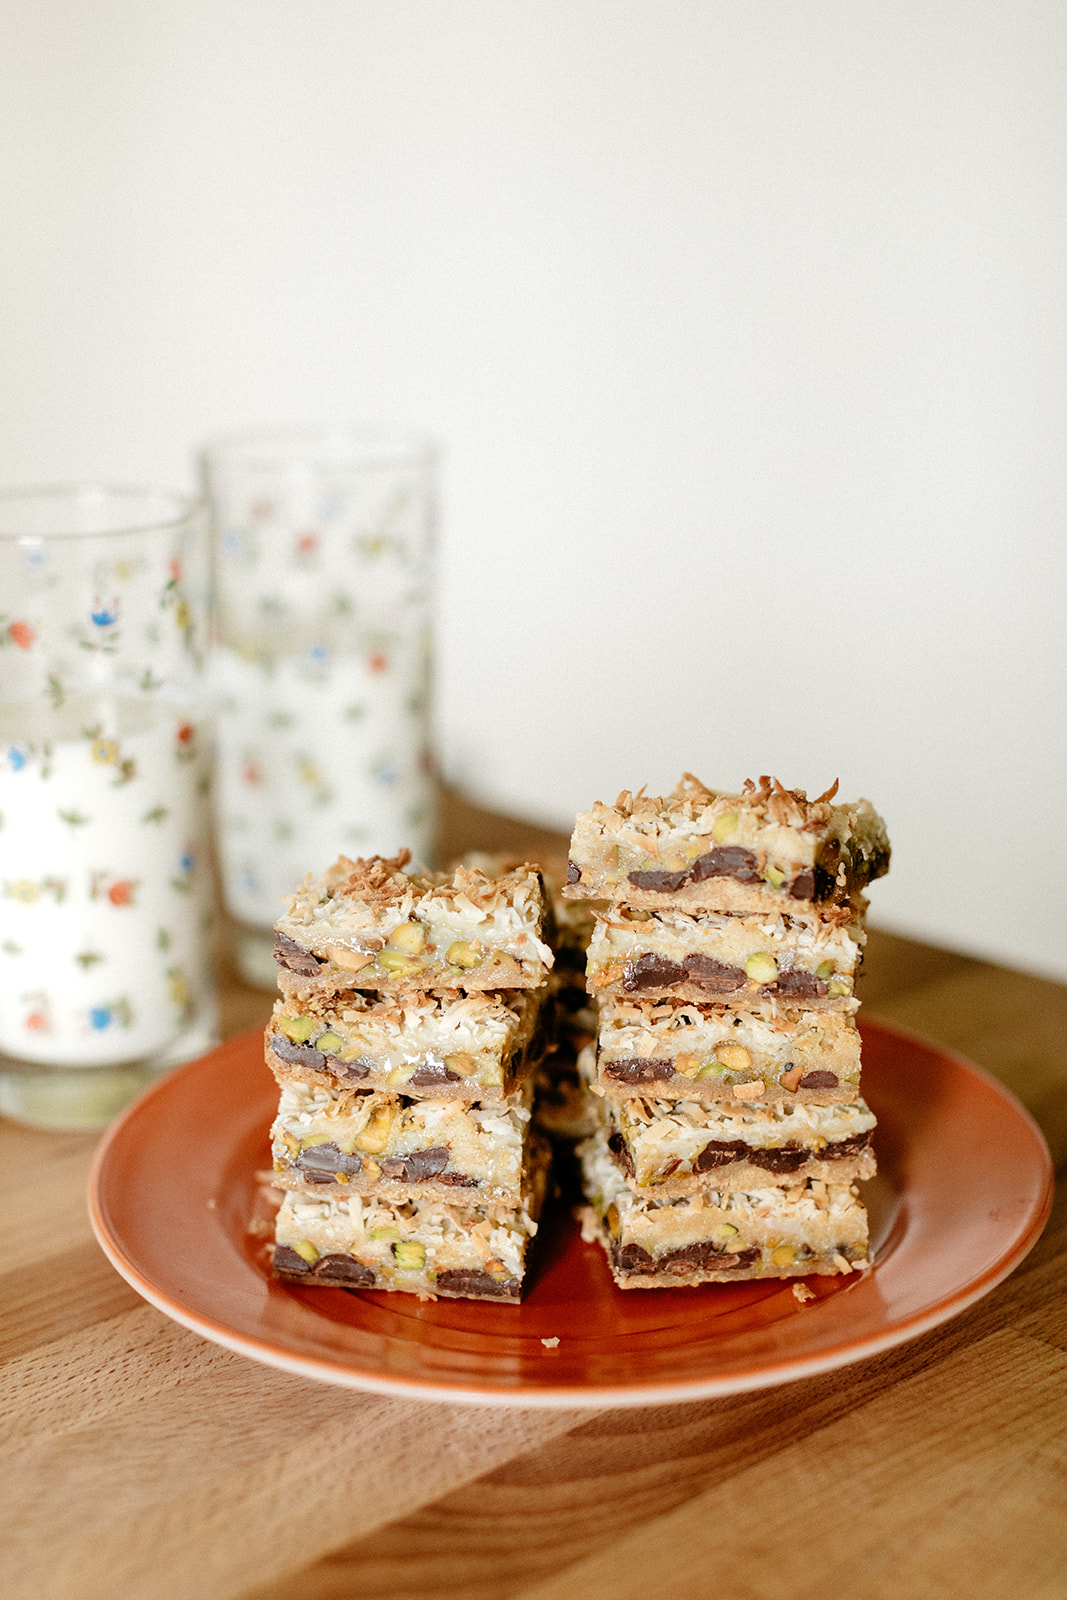 7-19-19-molly-yeh-halva-magic-bars-8.jpg